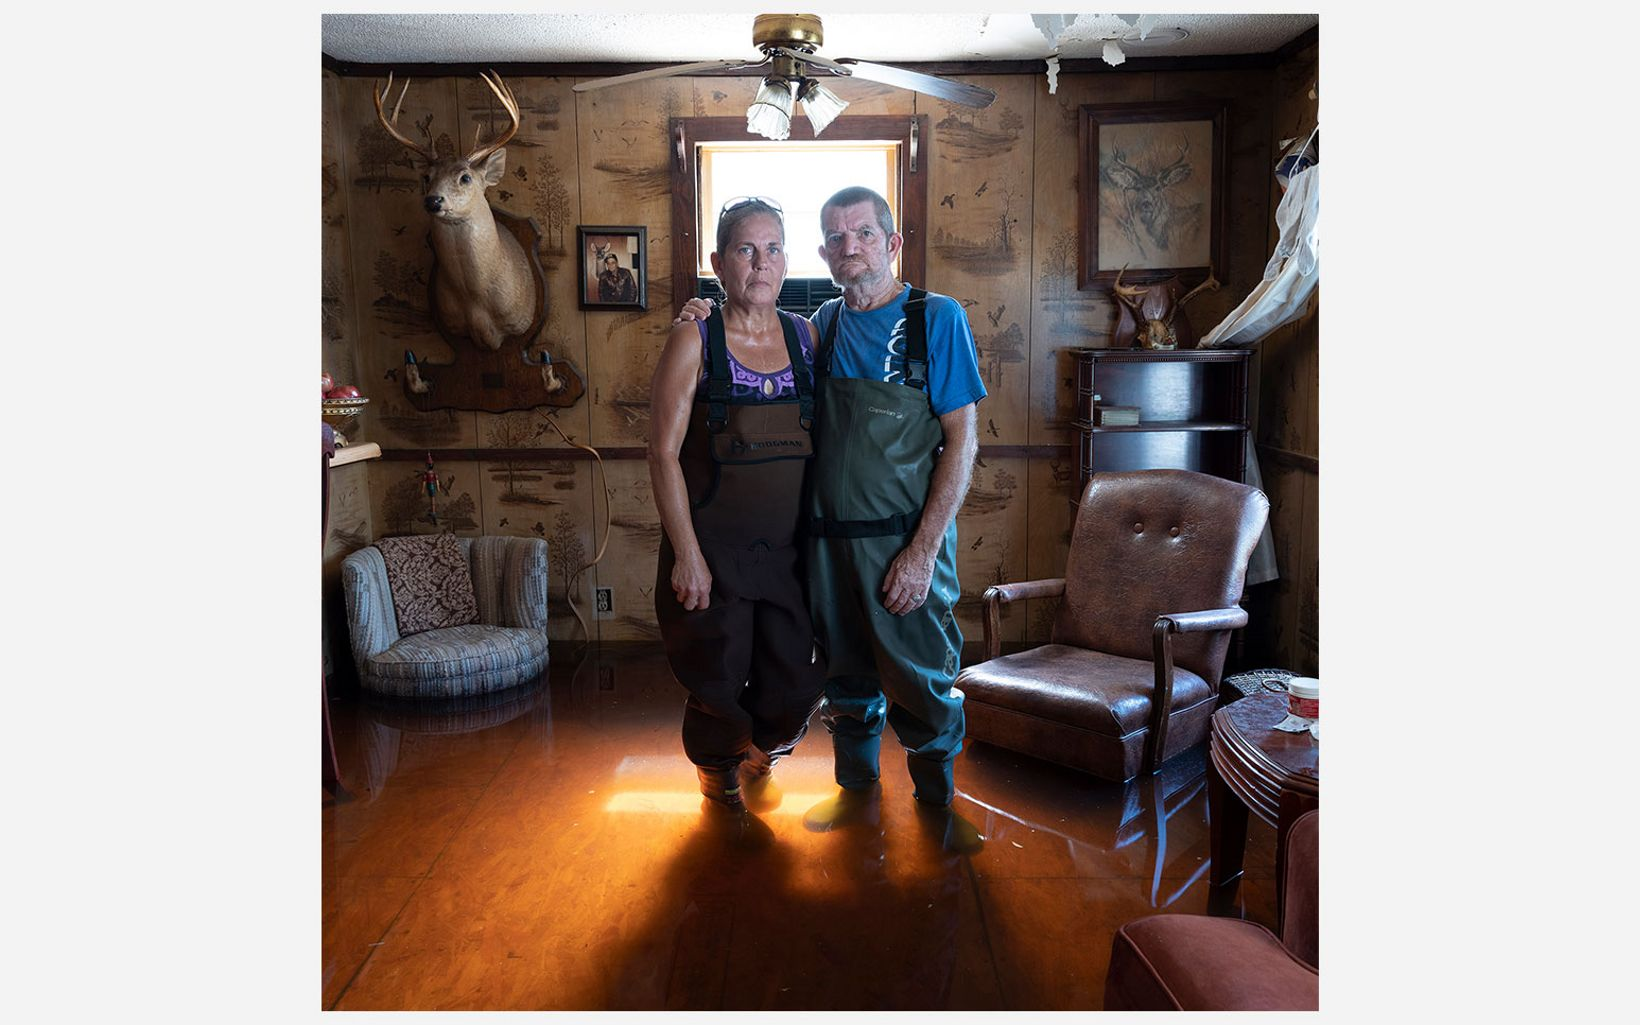 Kimberly and Rudy Fralix stand in their flooded home